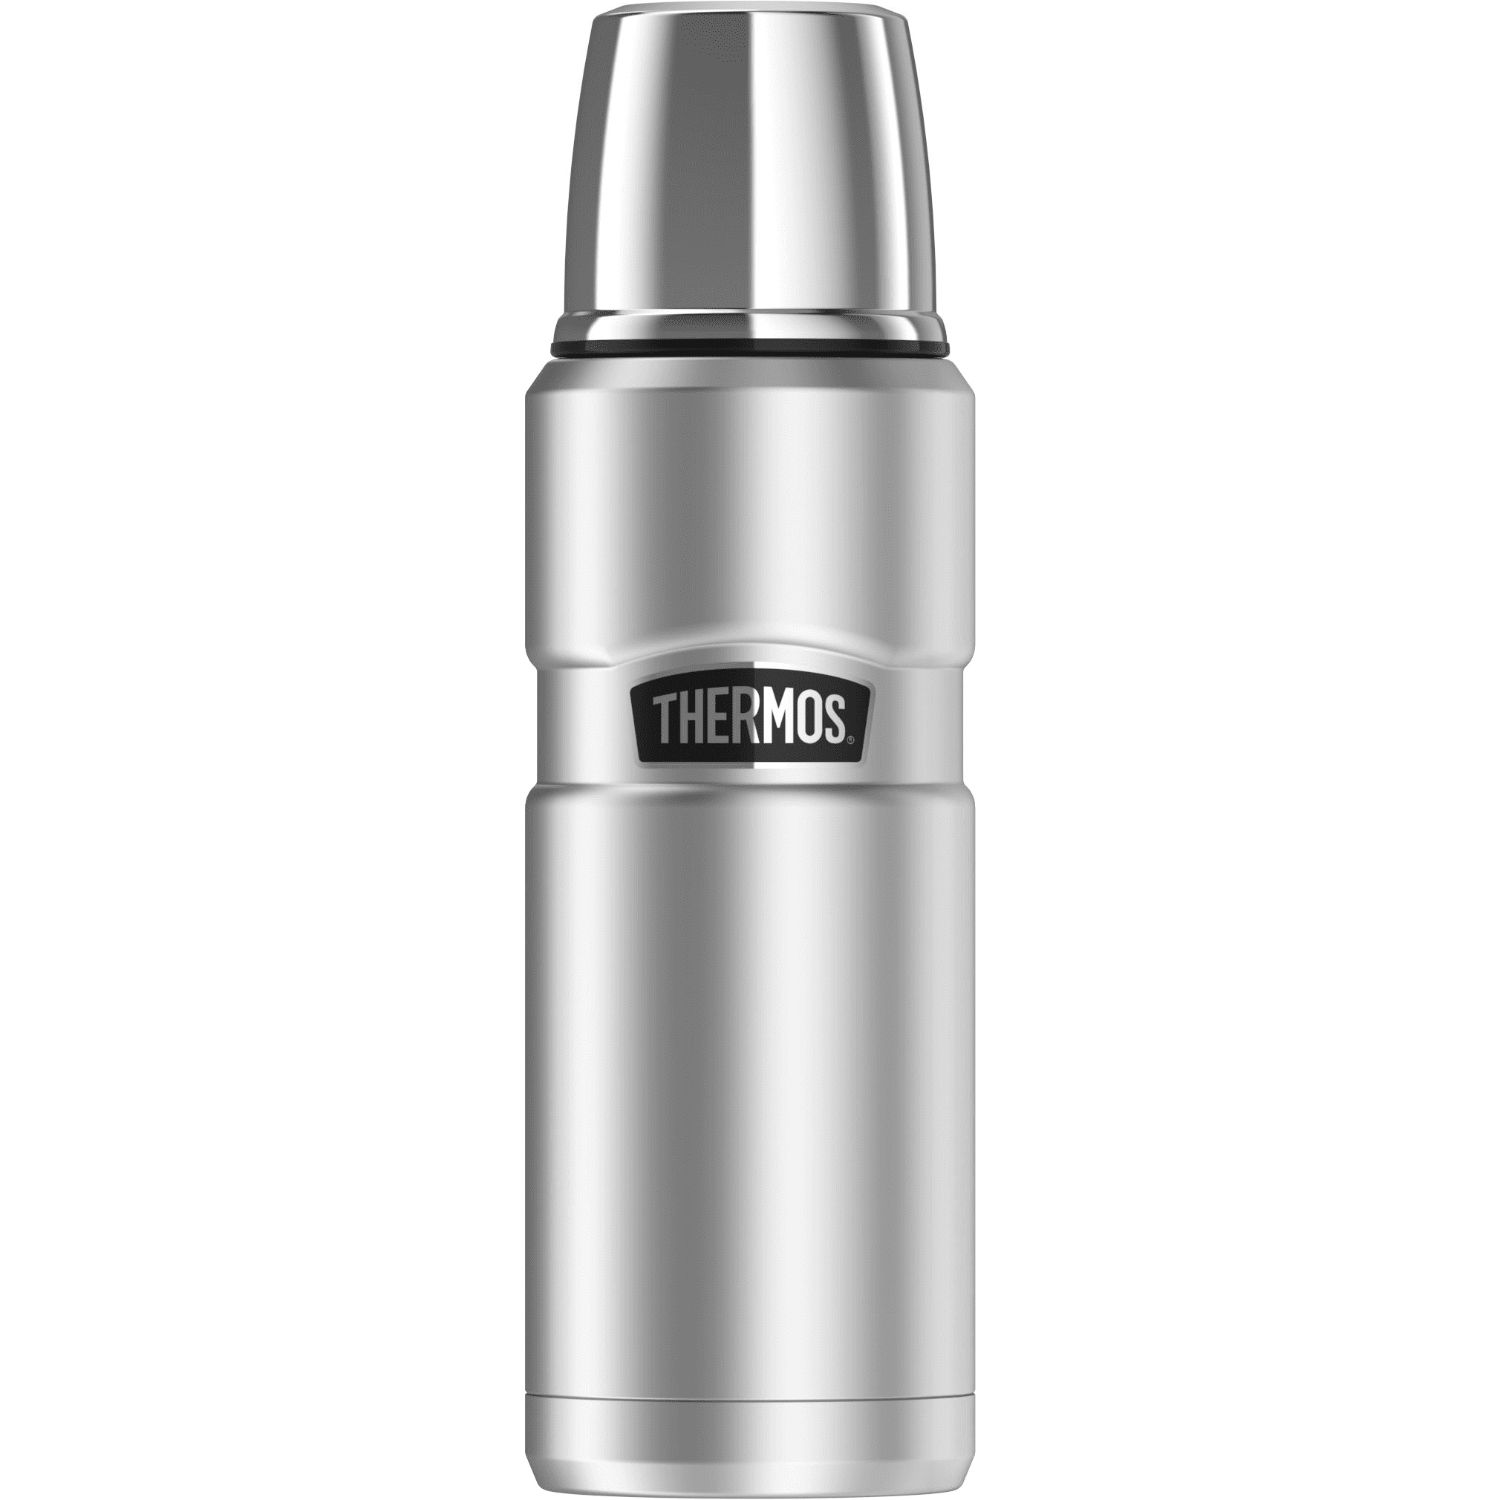 Thermos 16 oz Stainless Steel Compact Bottle Silver